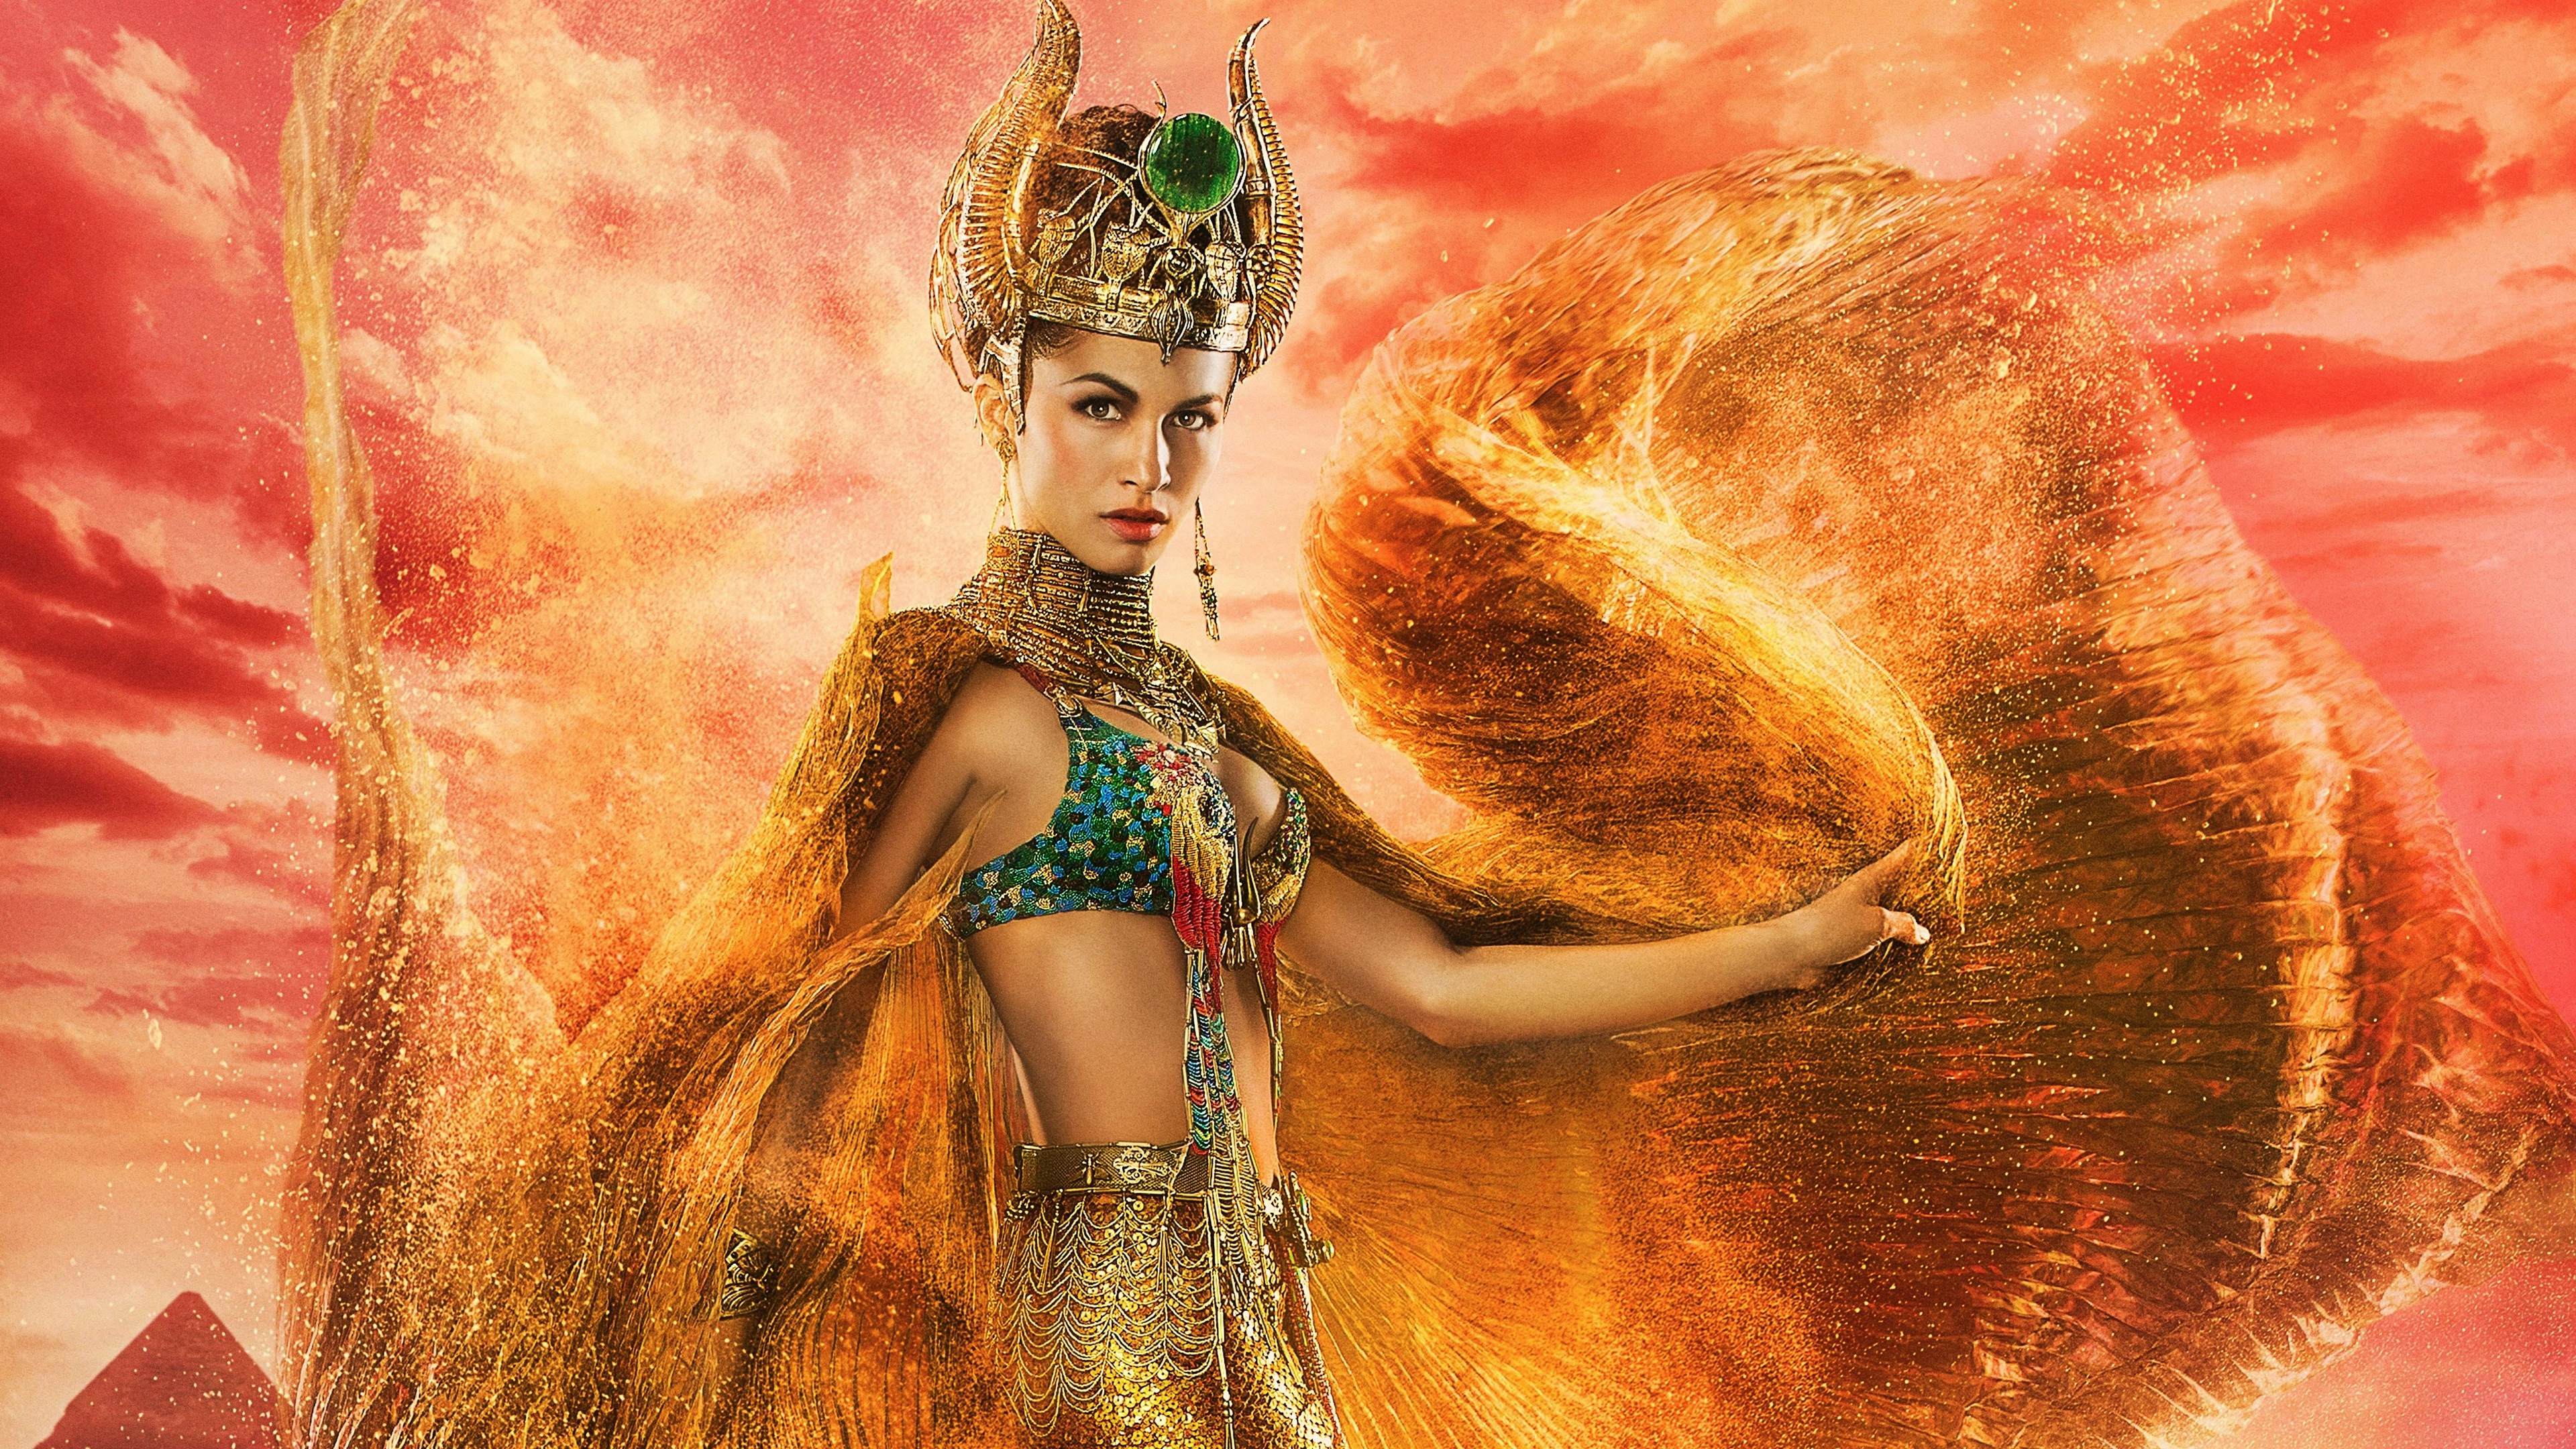 Hathor Gods Of Egypt Hd Movies 4k Wallpapers Images